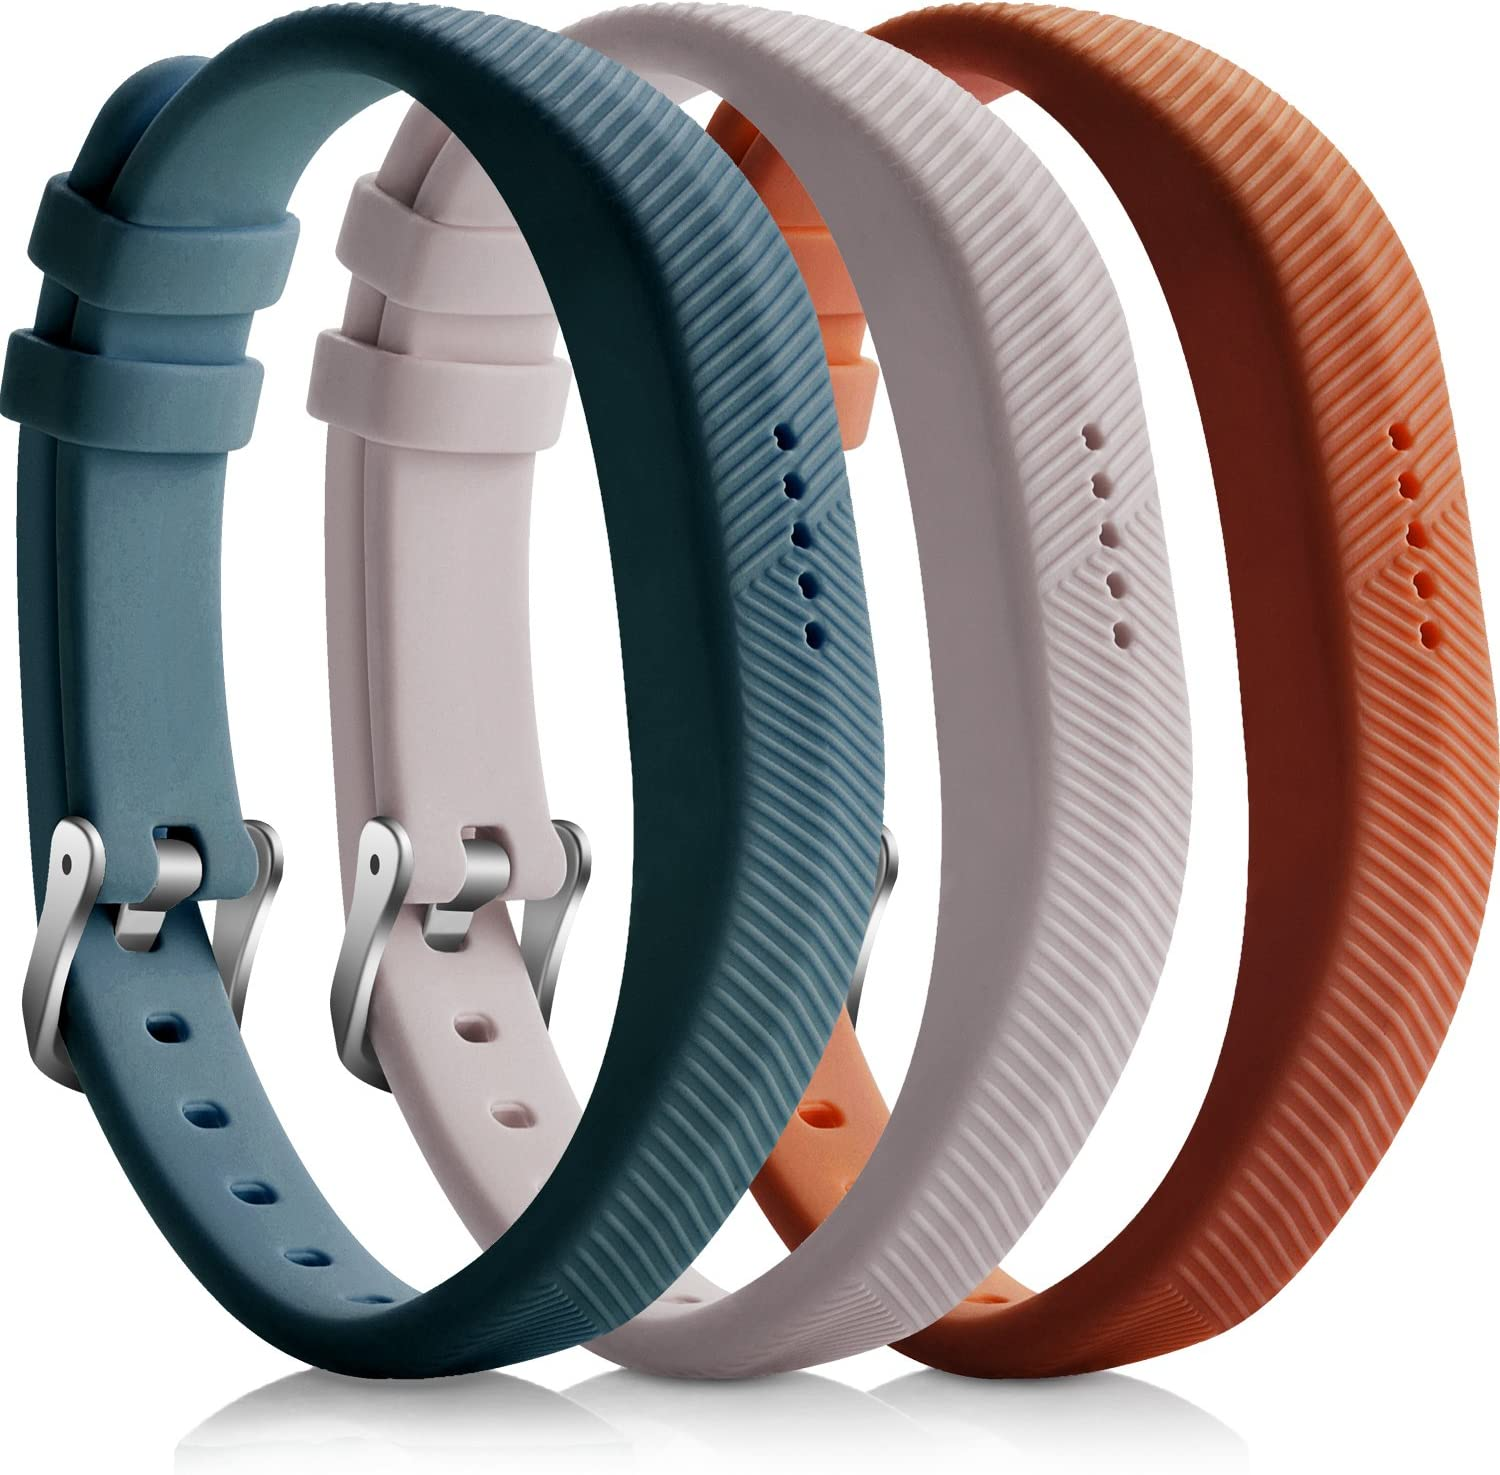 iBREK for Fitbit Flex 2 Replacement Bands No Tracker Adjustable Soft Silicone Accessory Wristband for Women Man